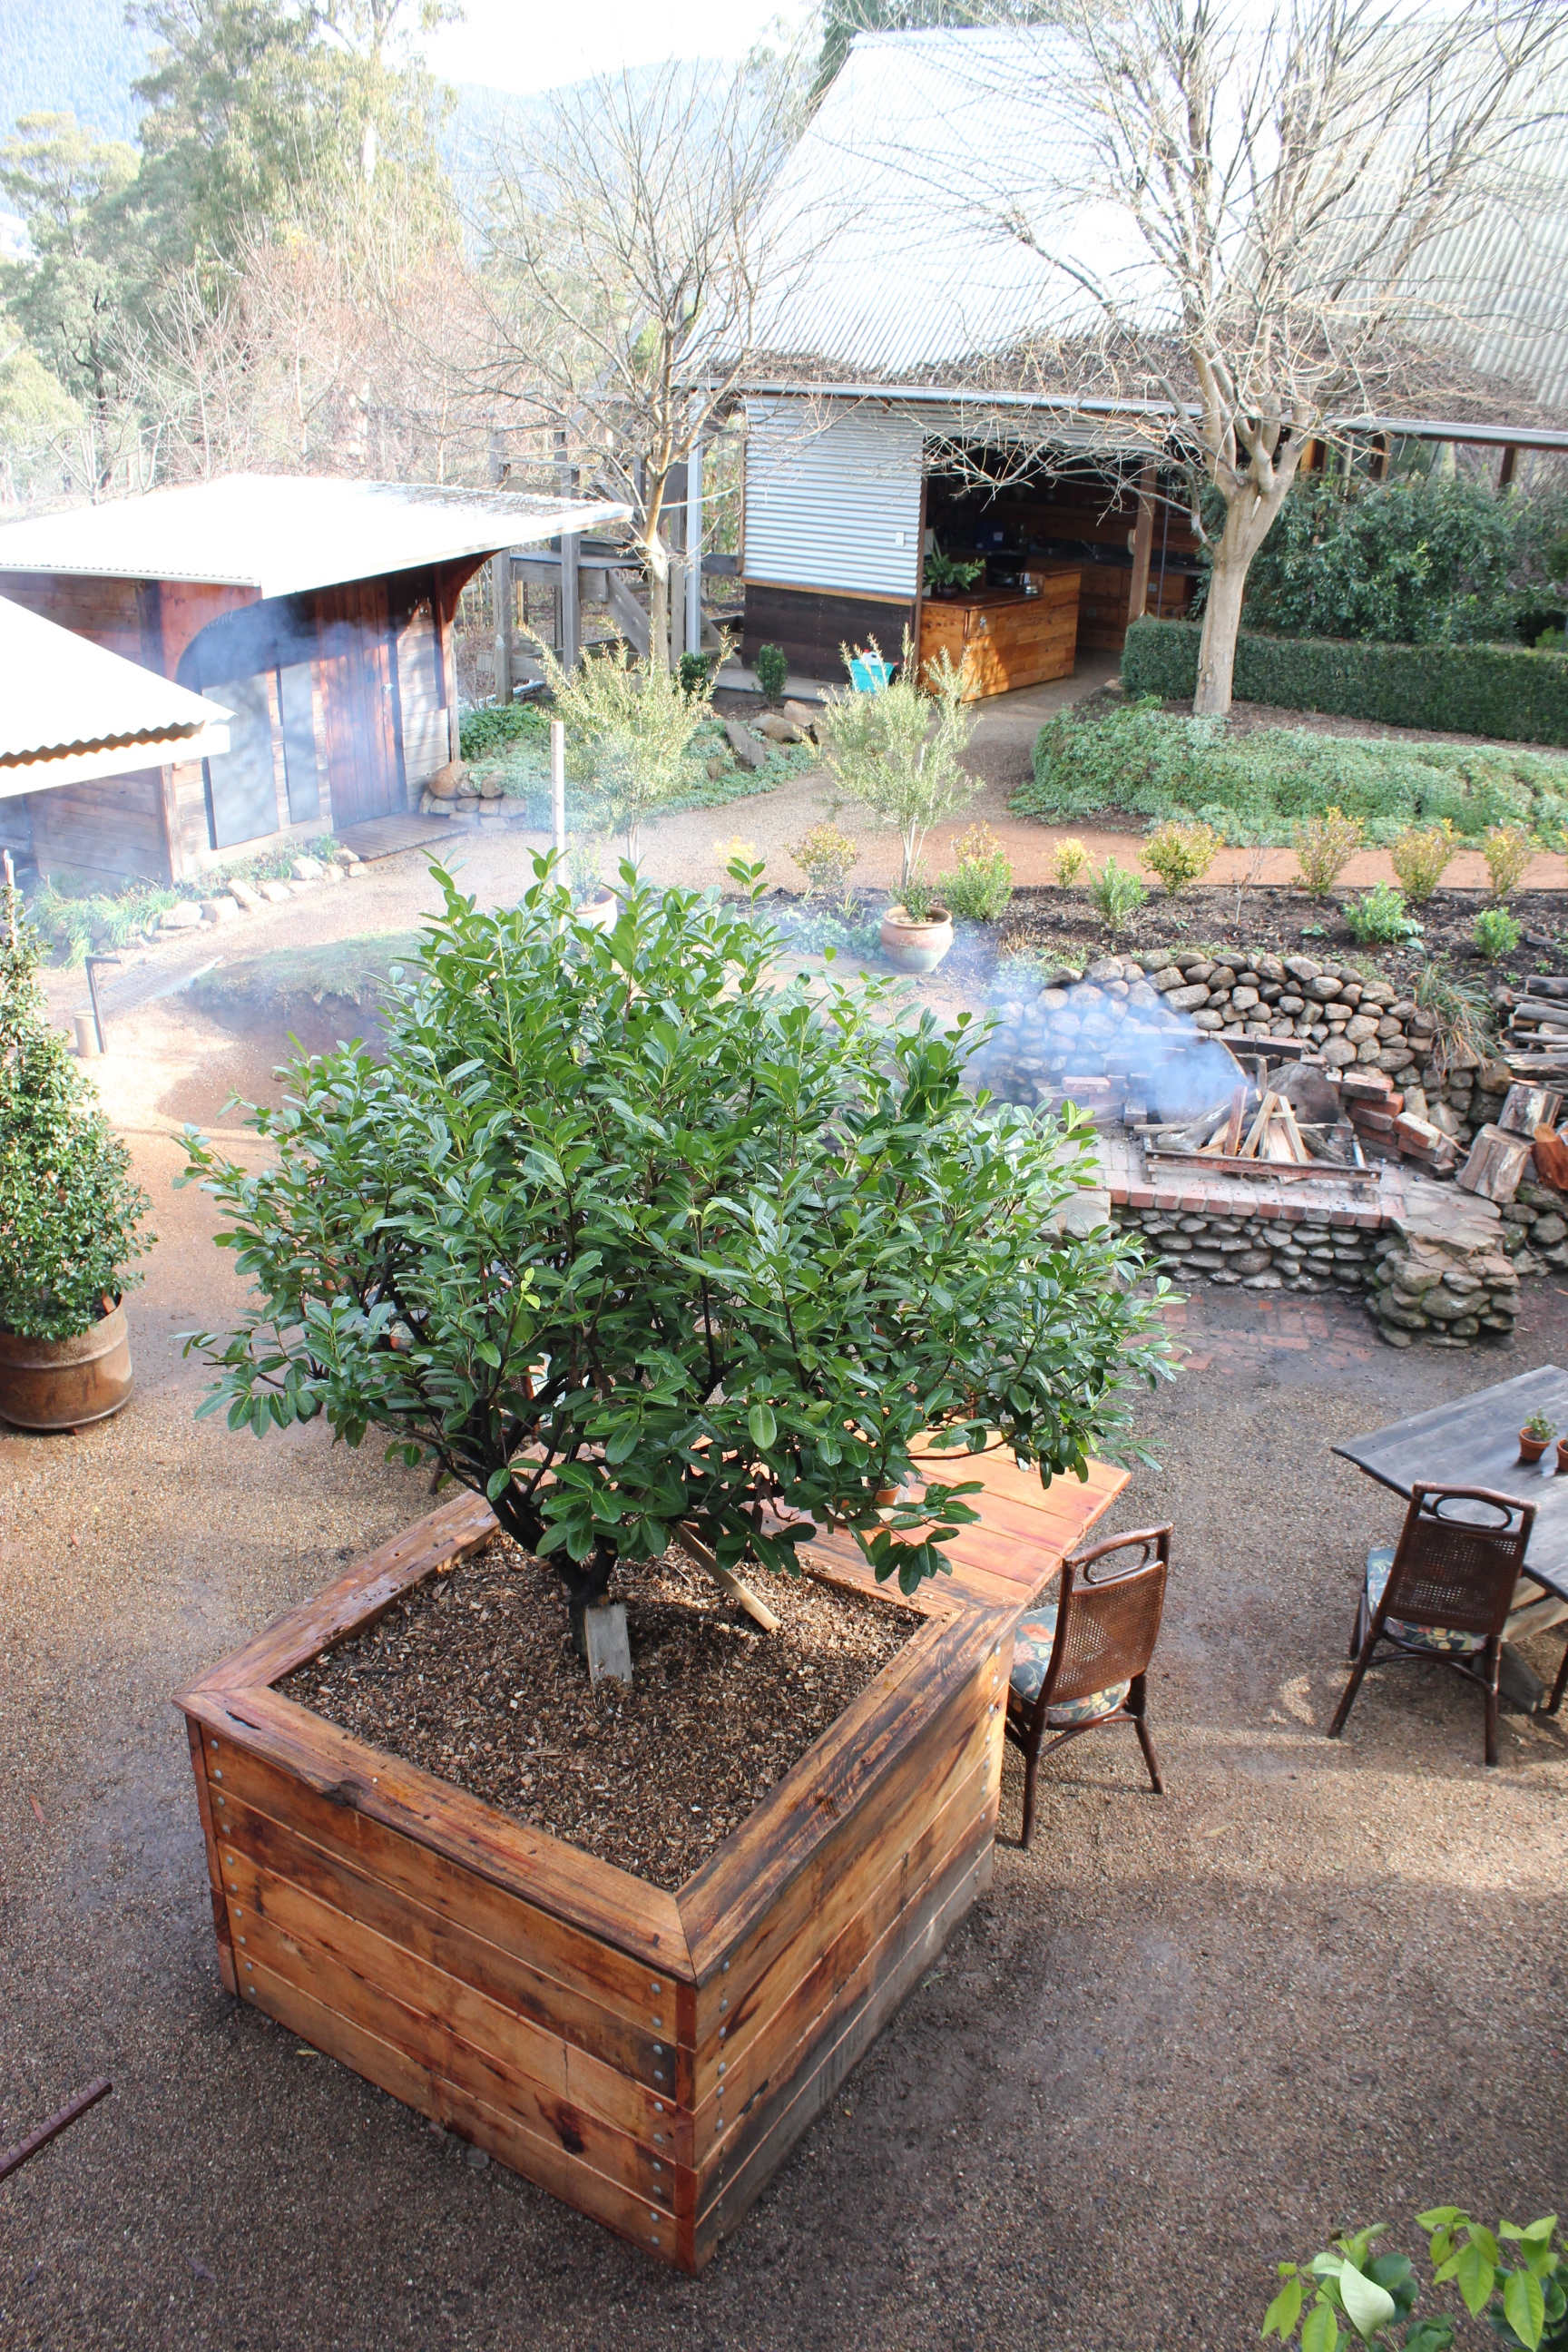 Paynes hut is remote accommodation in victoria australia for Gardening 101 australia